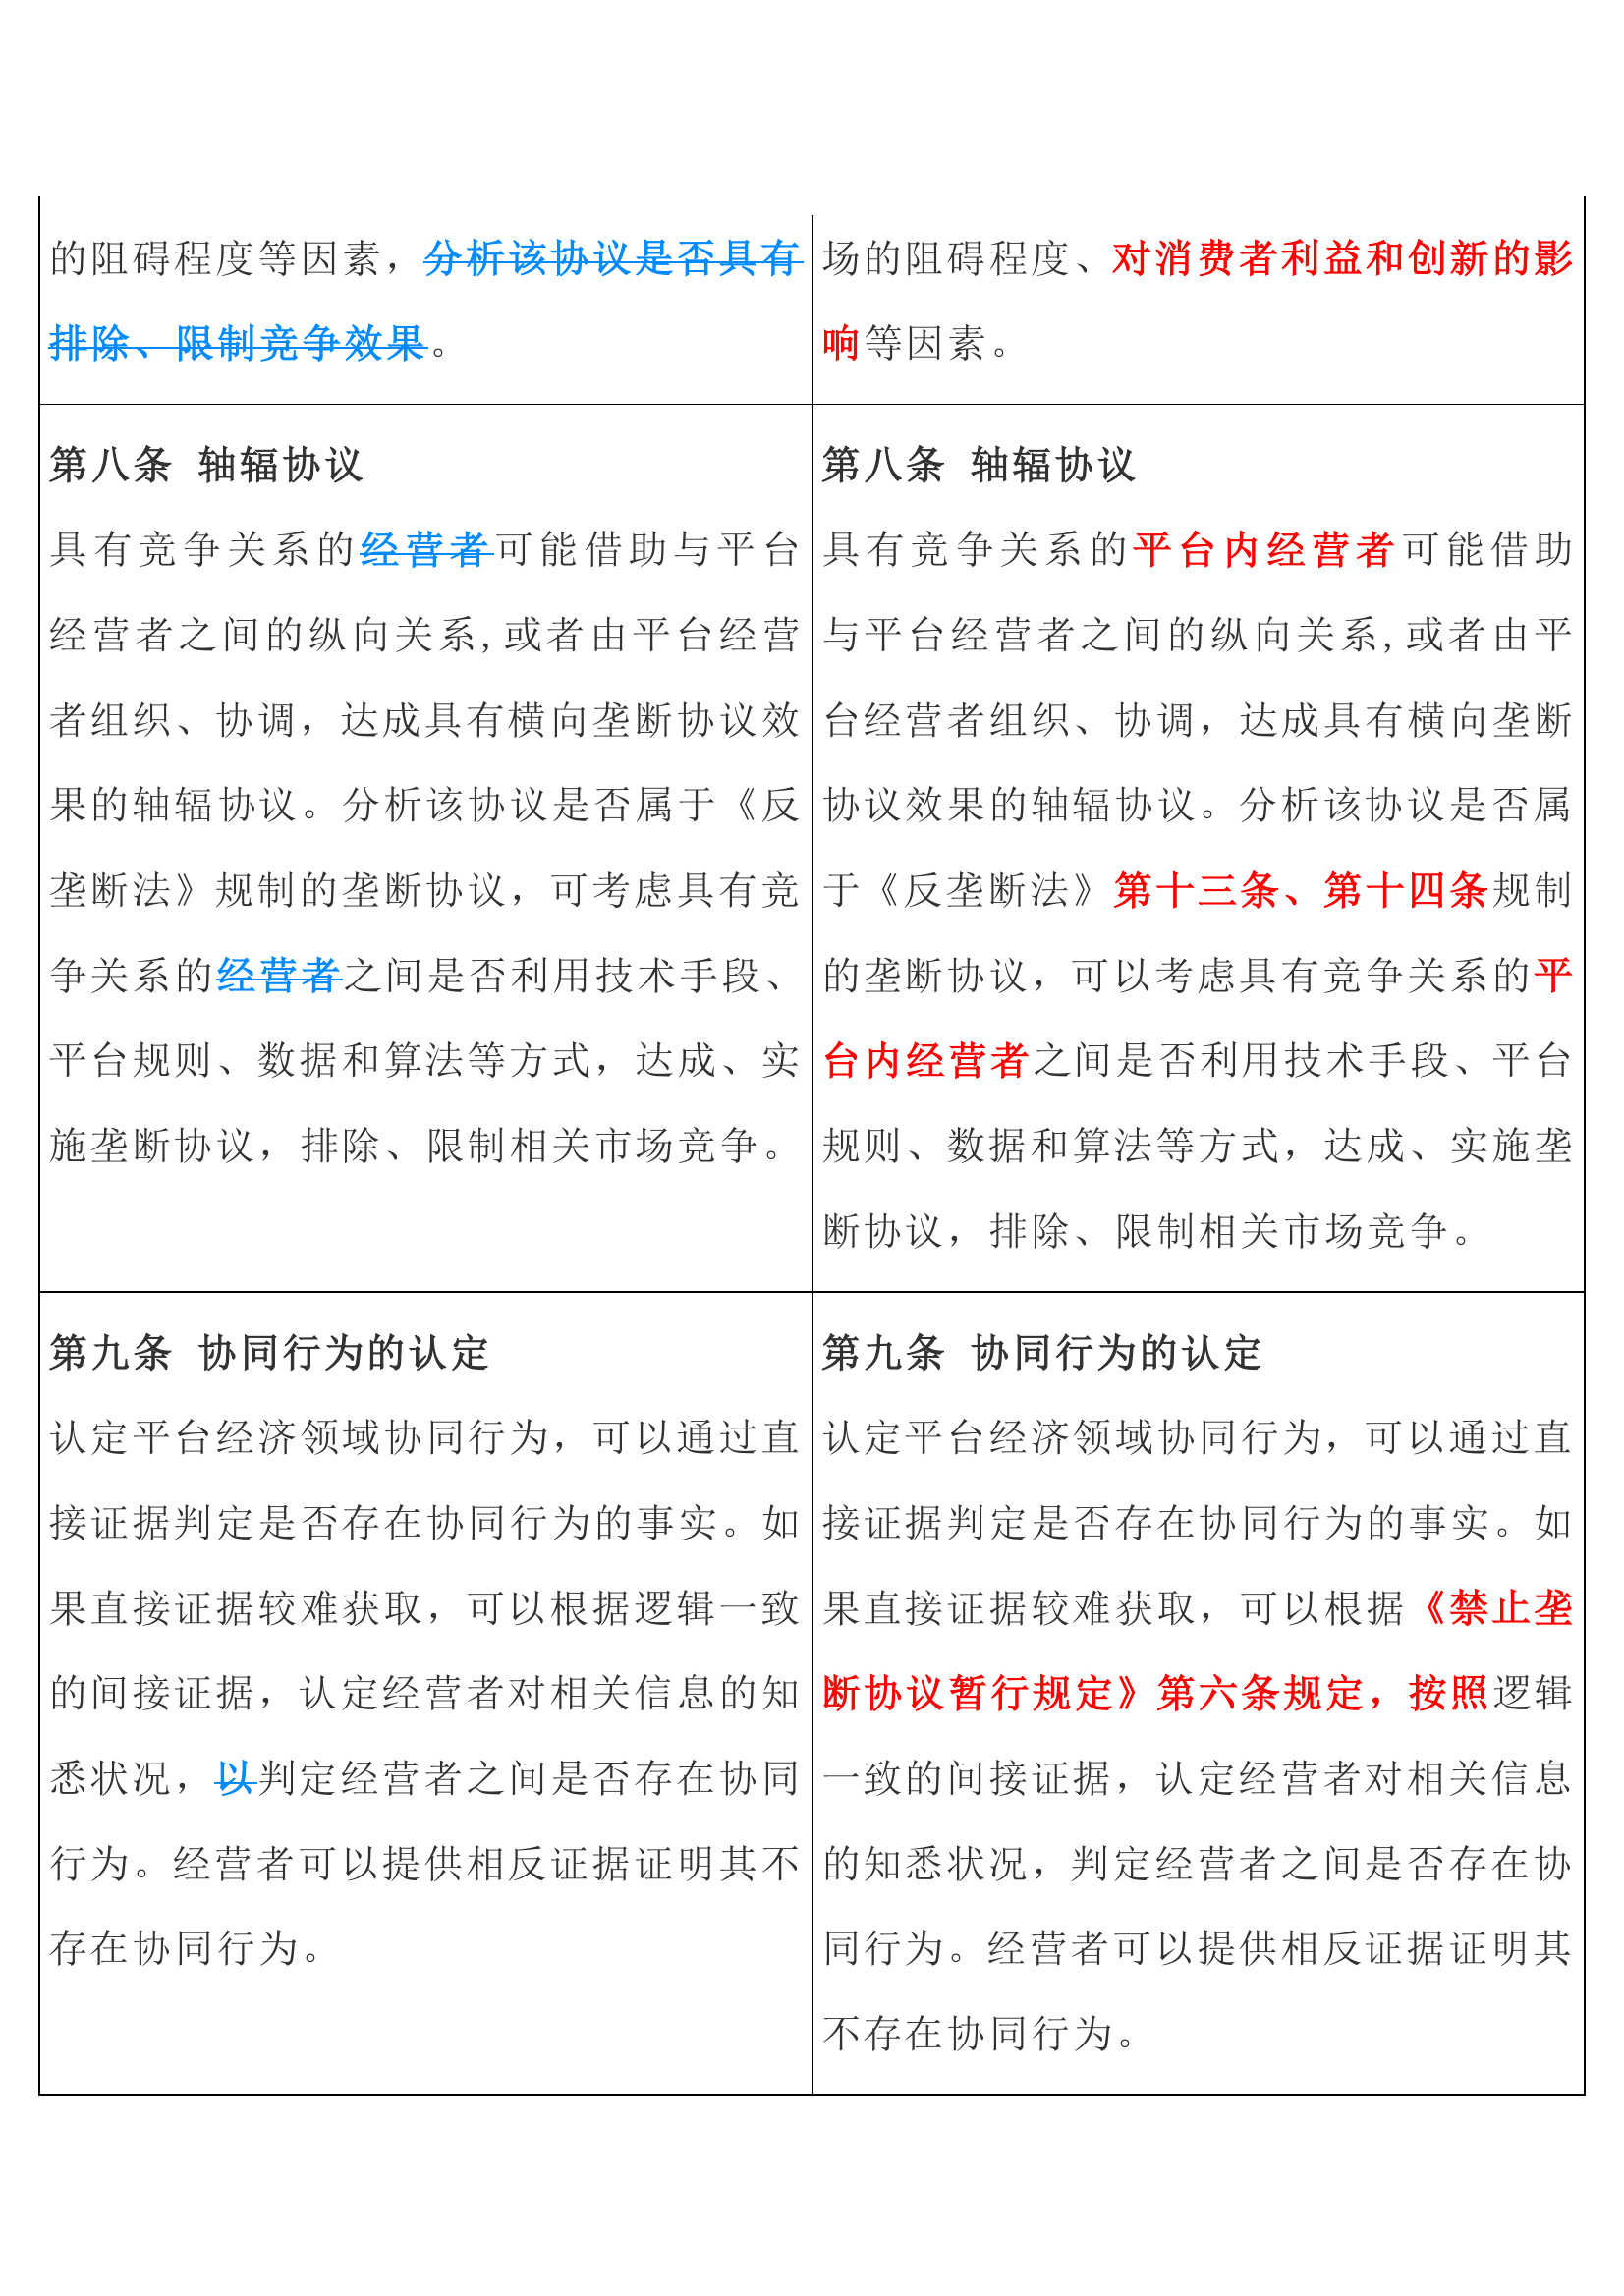 share_pdf_exportpage11(2).png